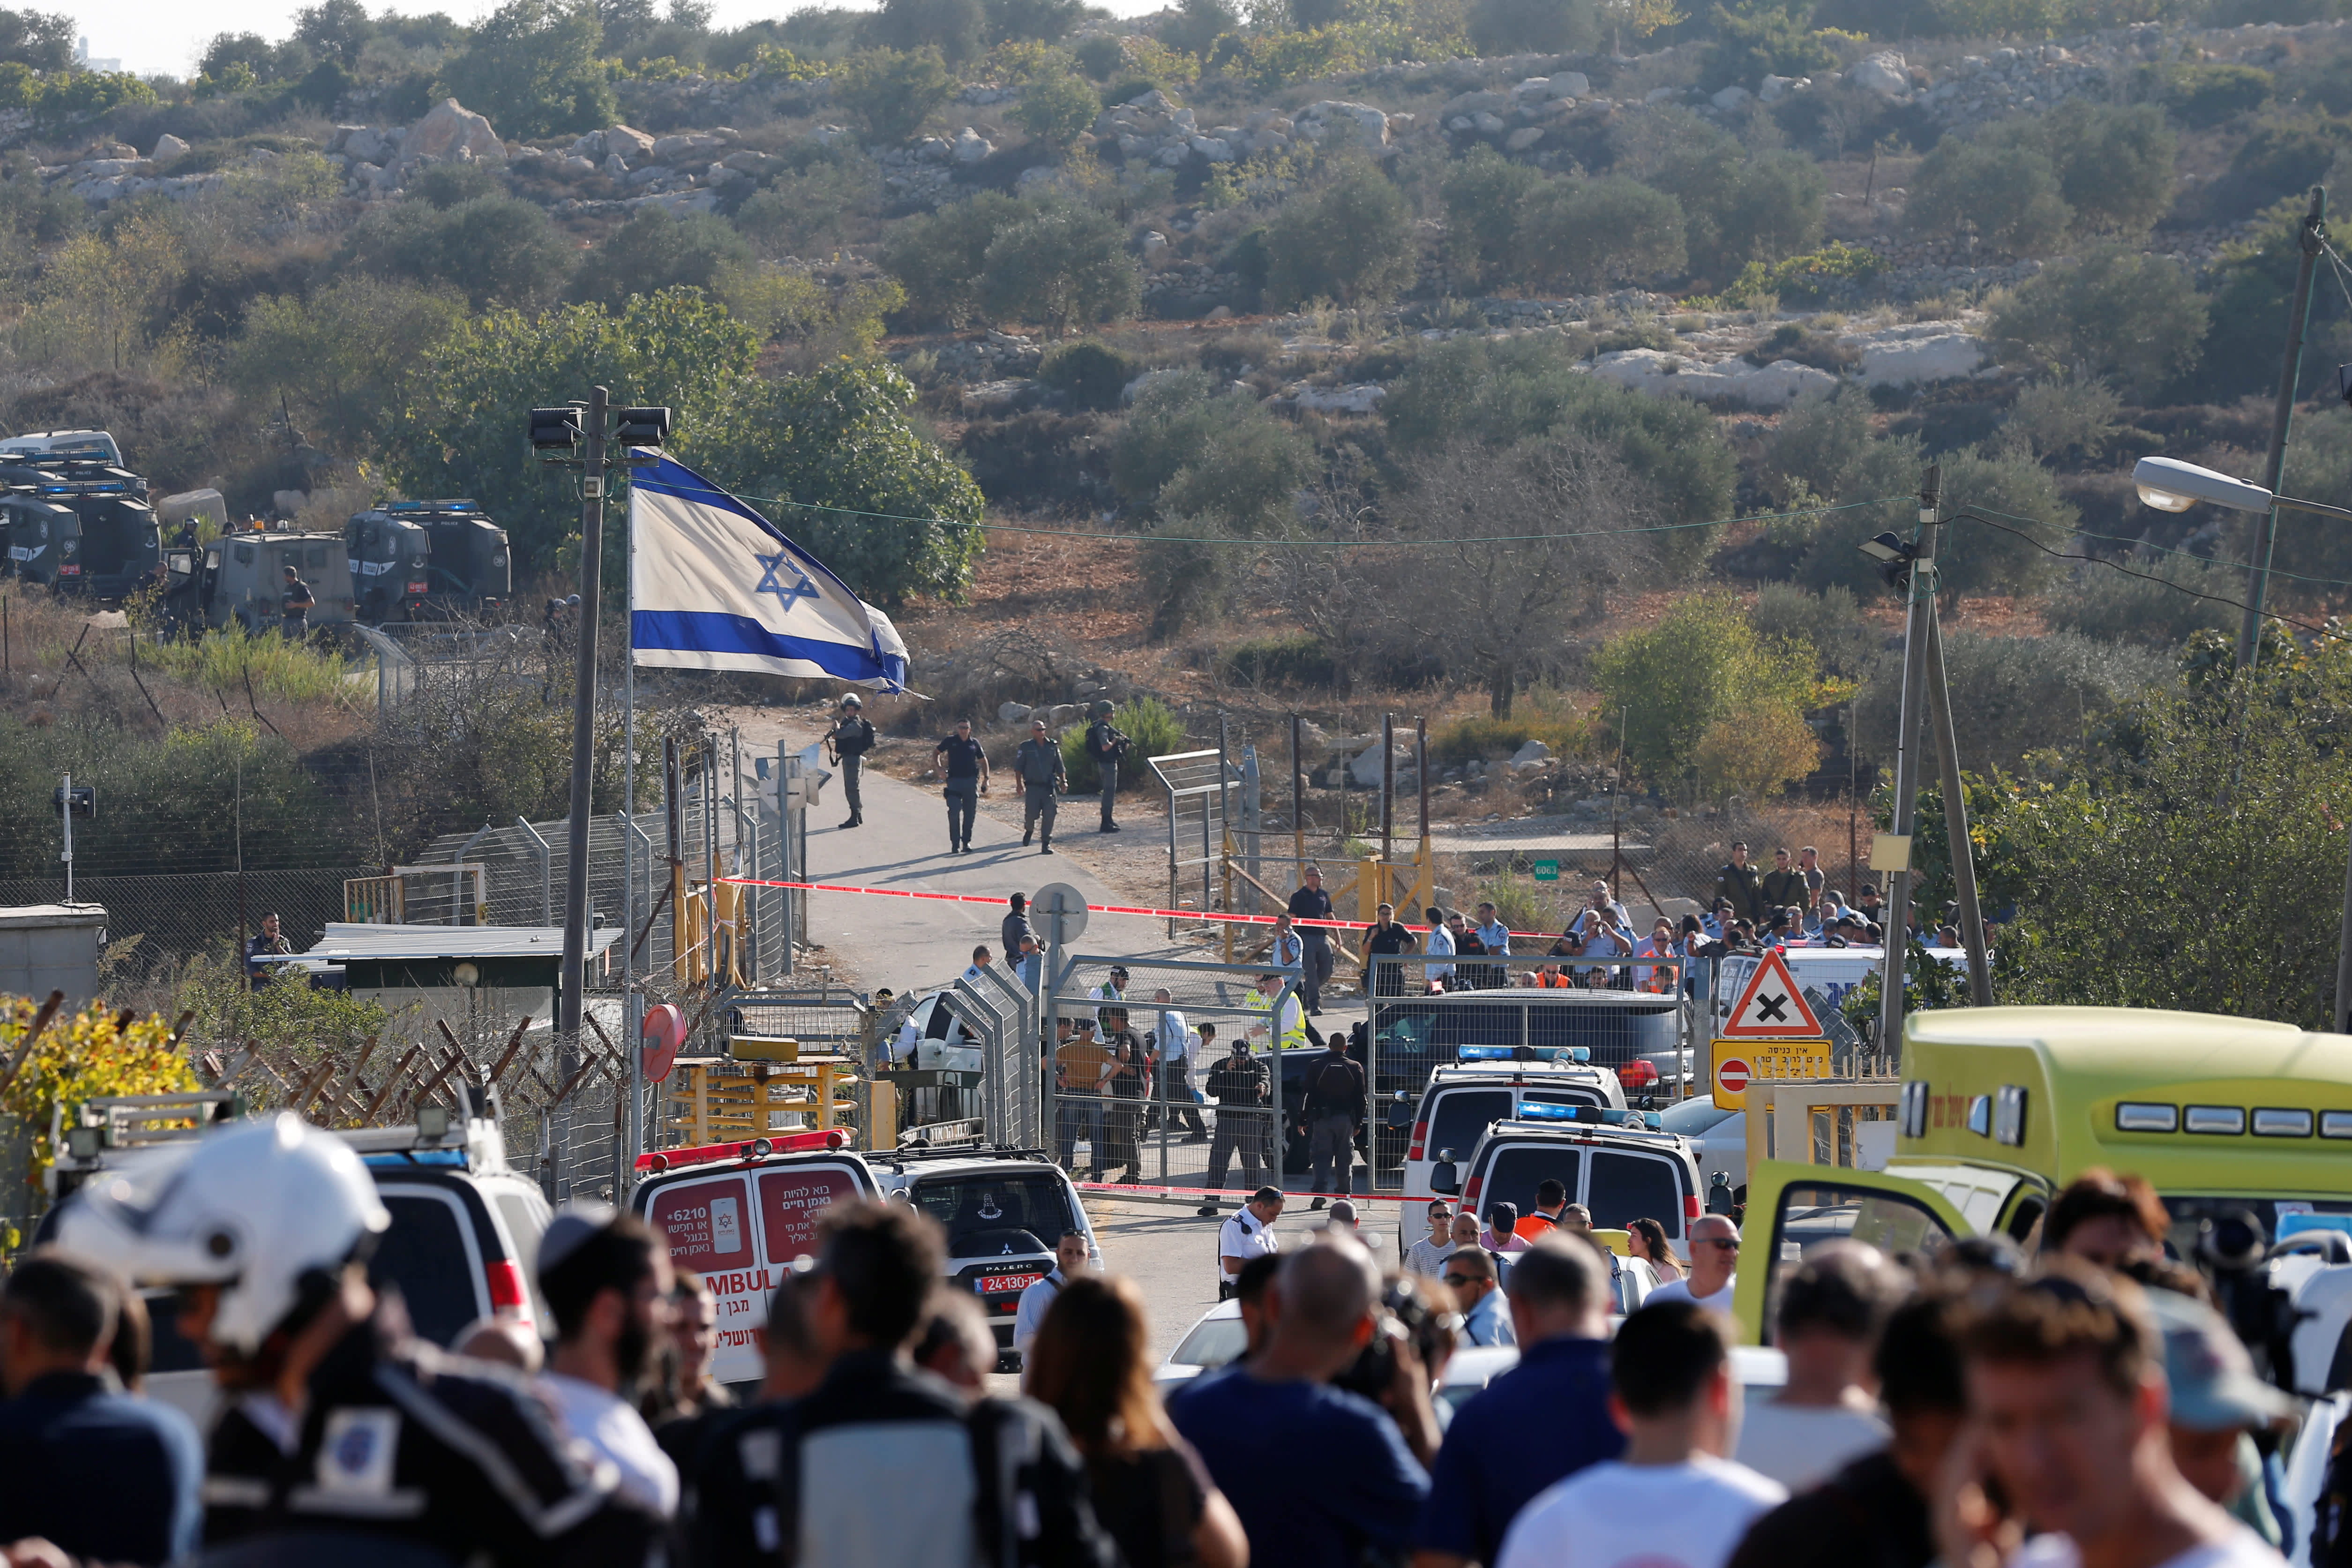 A general view of the scene of the terror attack in Har Adar (AMMAR AWAD / REUTERS)